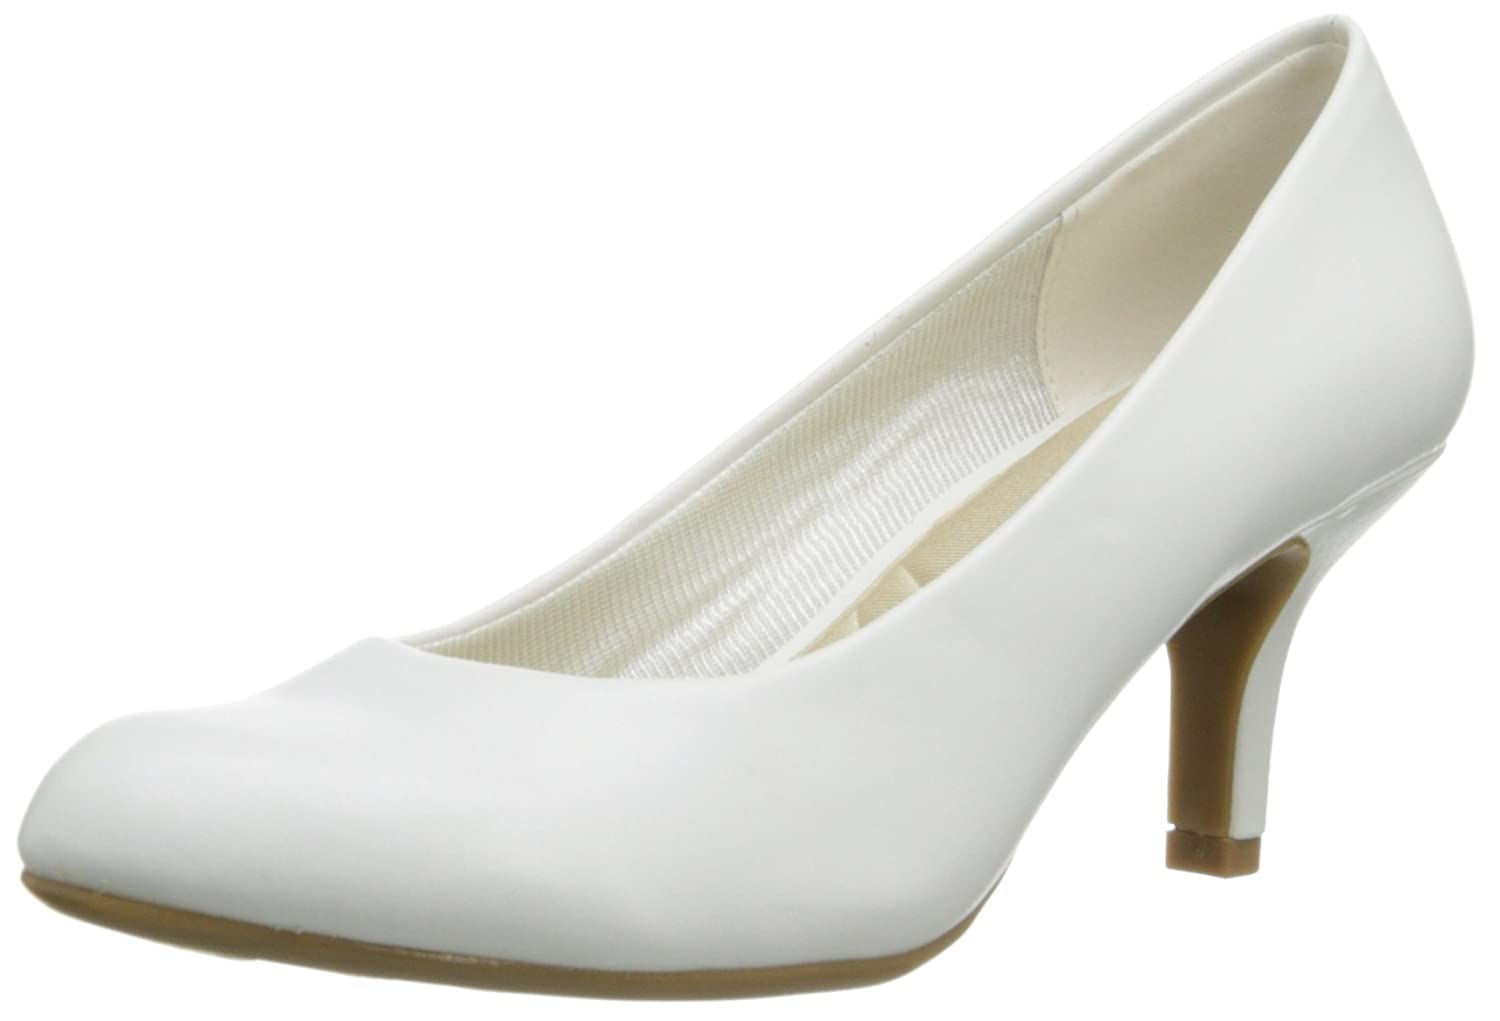 Easy Street Women's Passion Dress Pump B00G0KZ4RS 8 N US|White